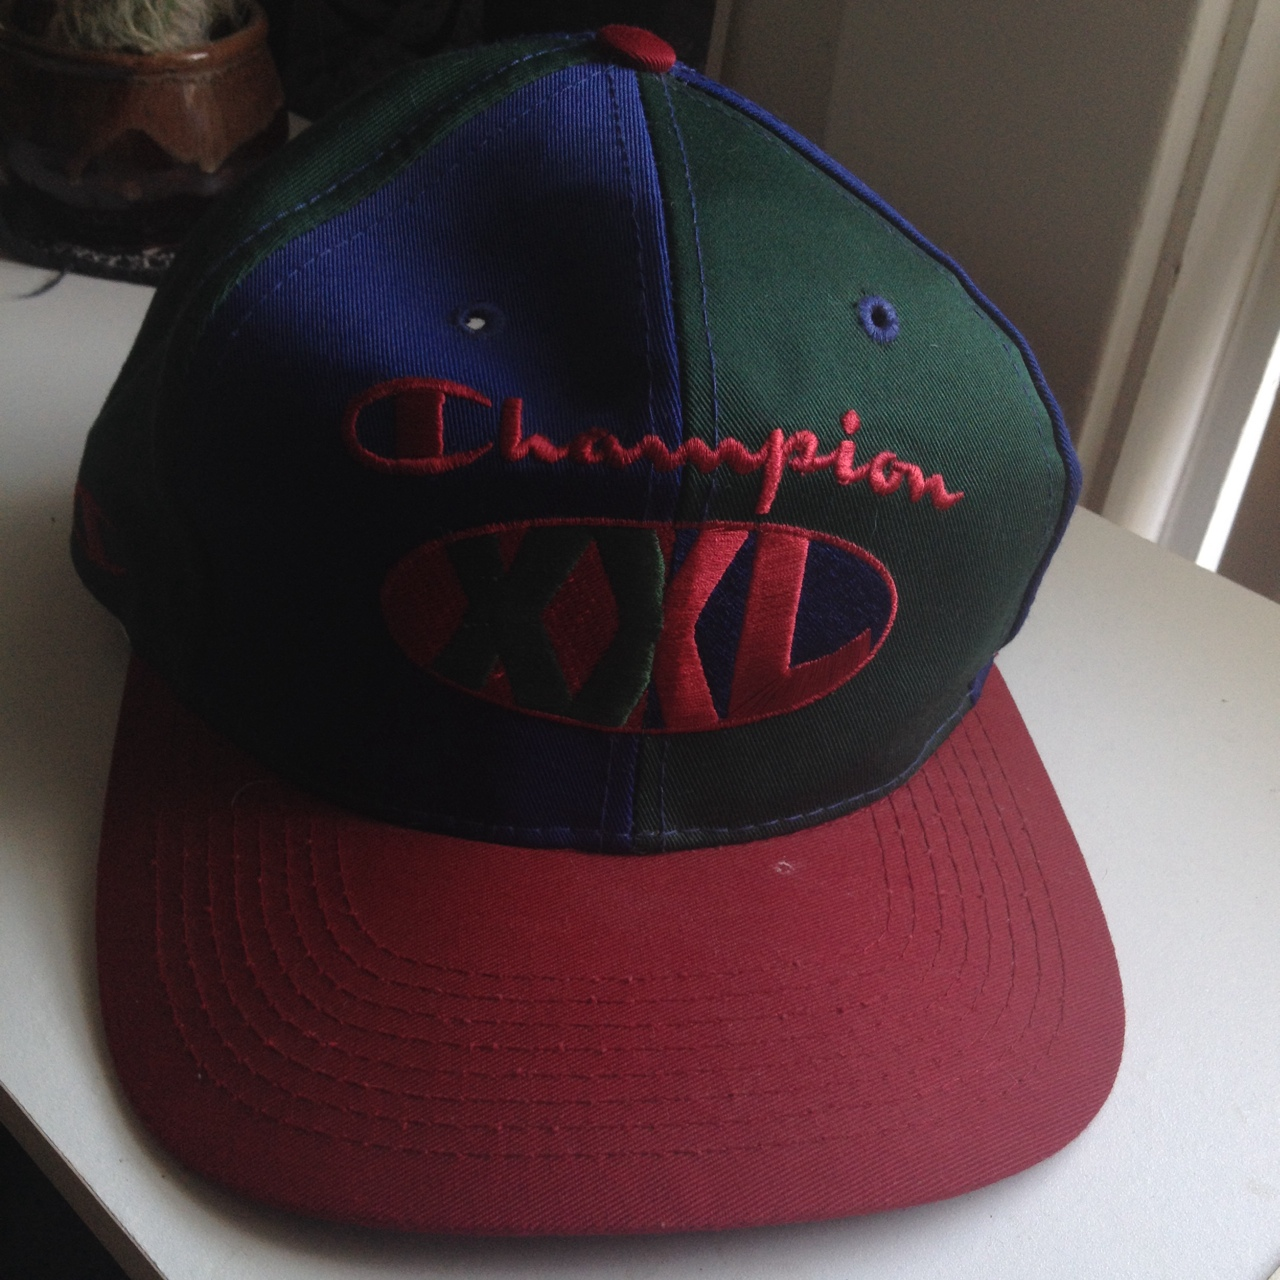 AUTHENTIC/ OG CHAMPION XXL RED/BLUE/ GREEN